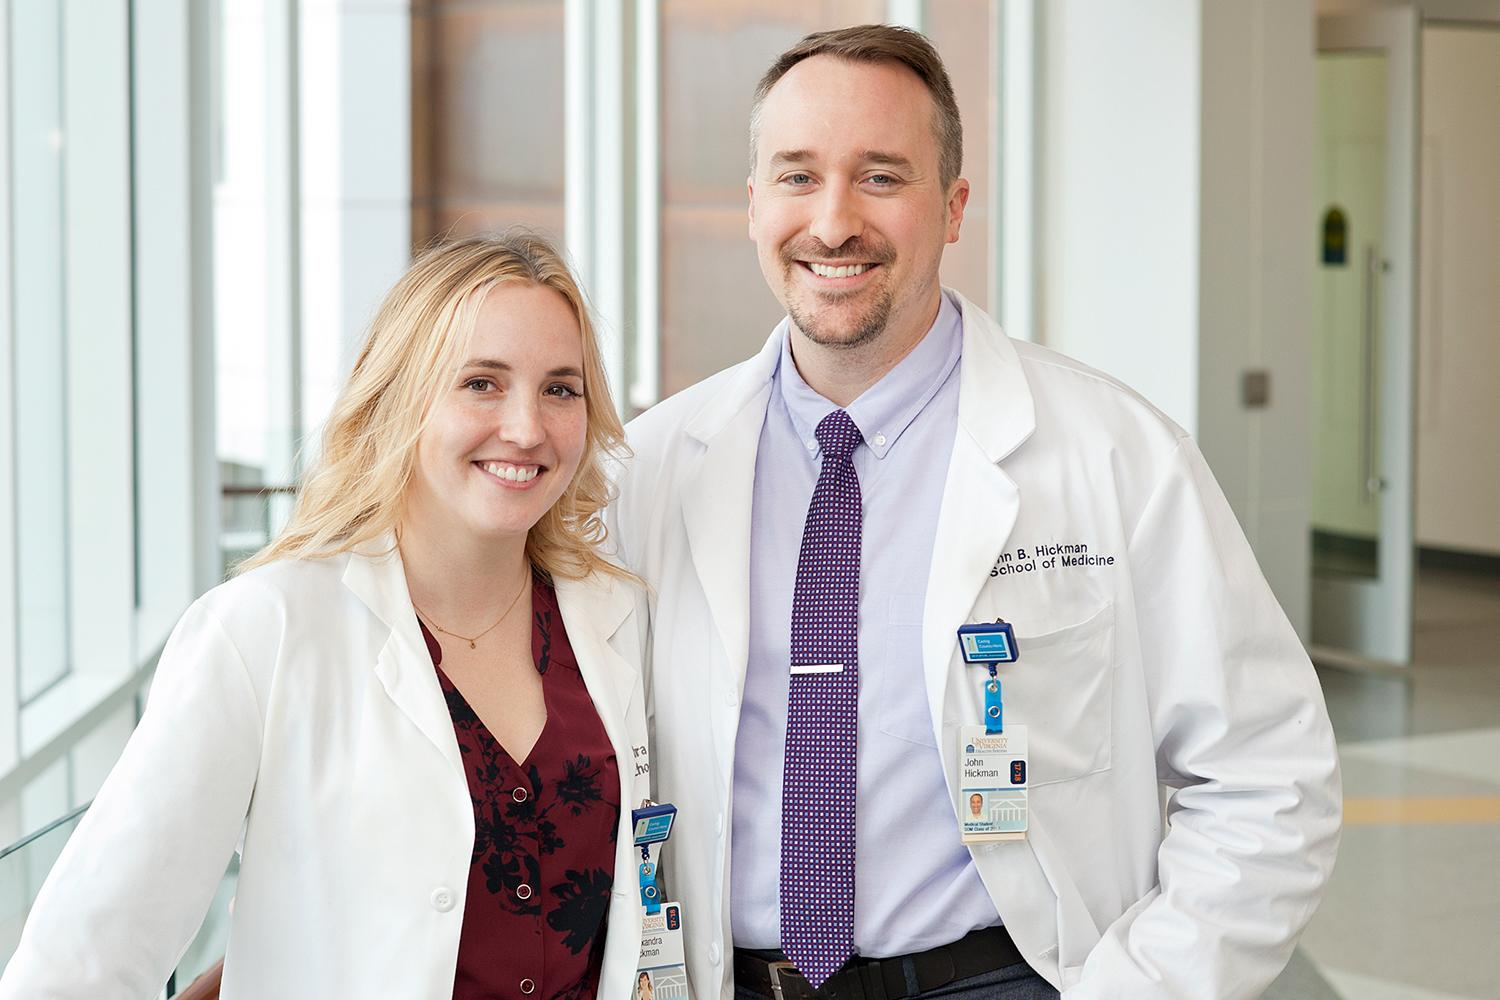 Alex Hickman, left, was the first to shift focus from theater to medicine. But John soon followed, and they agree that the skills used onstage translate well into their new careers.